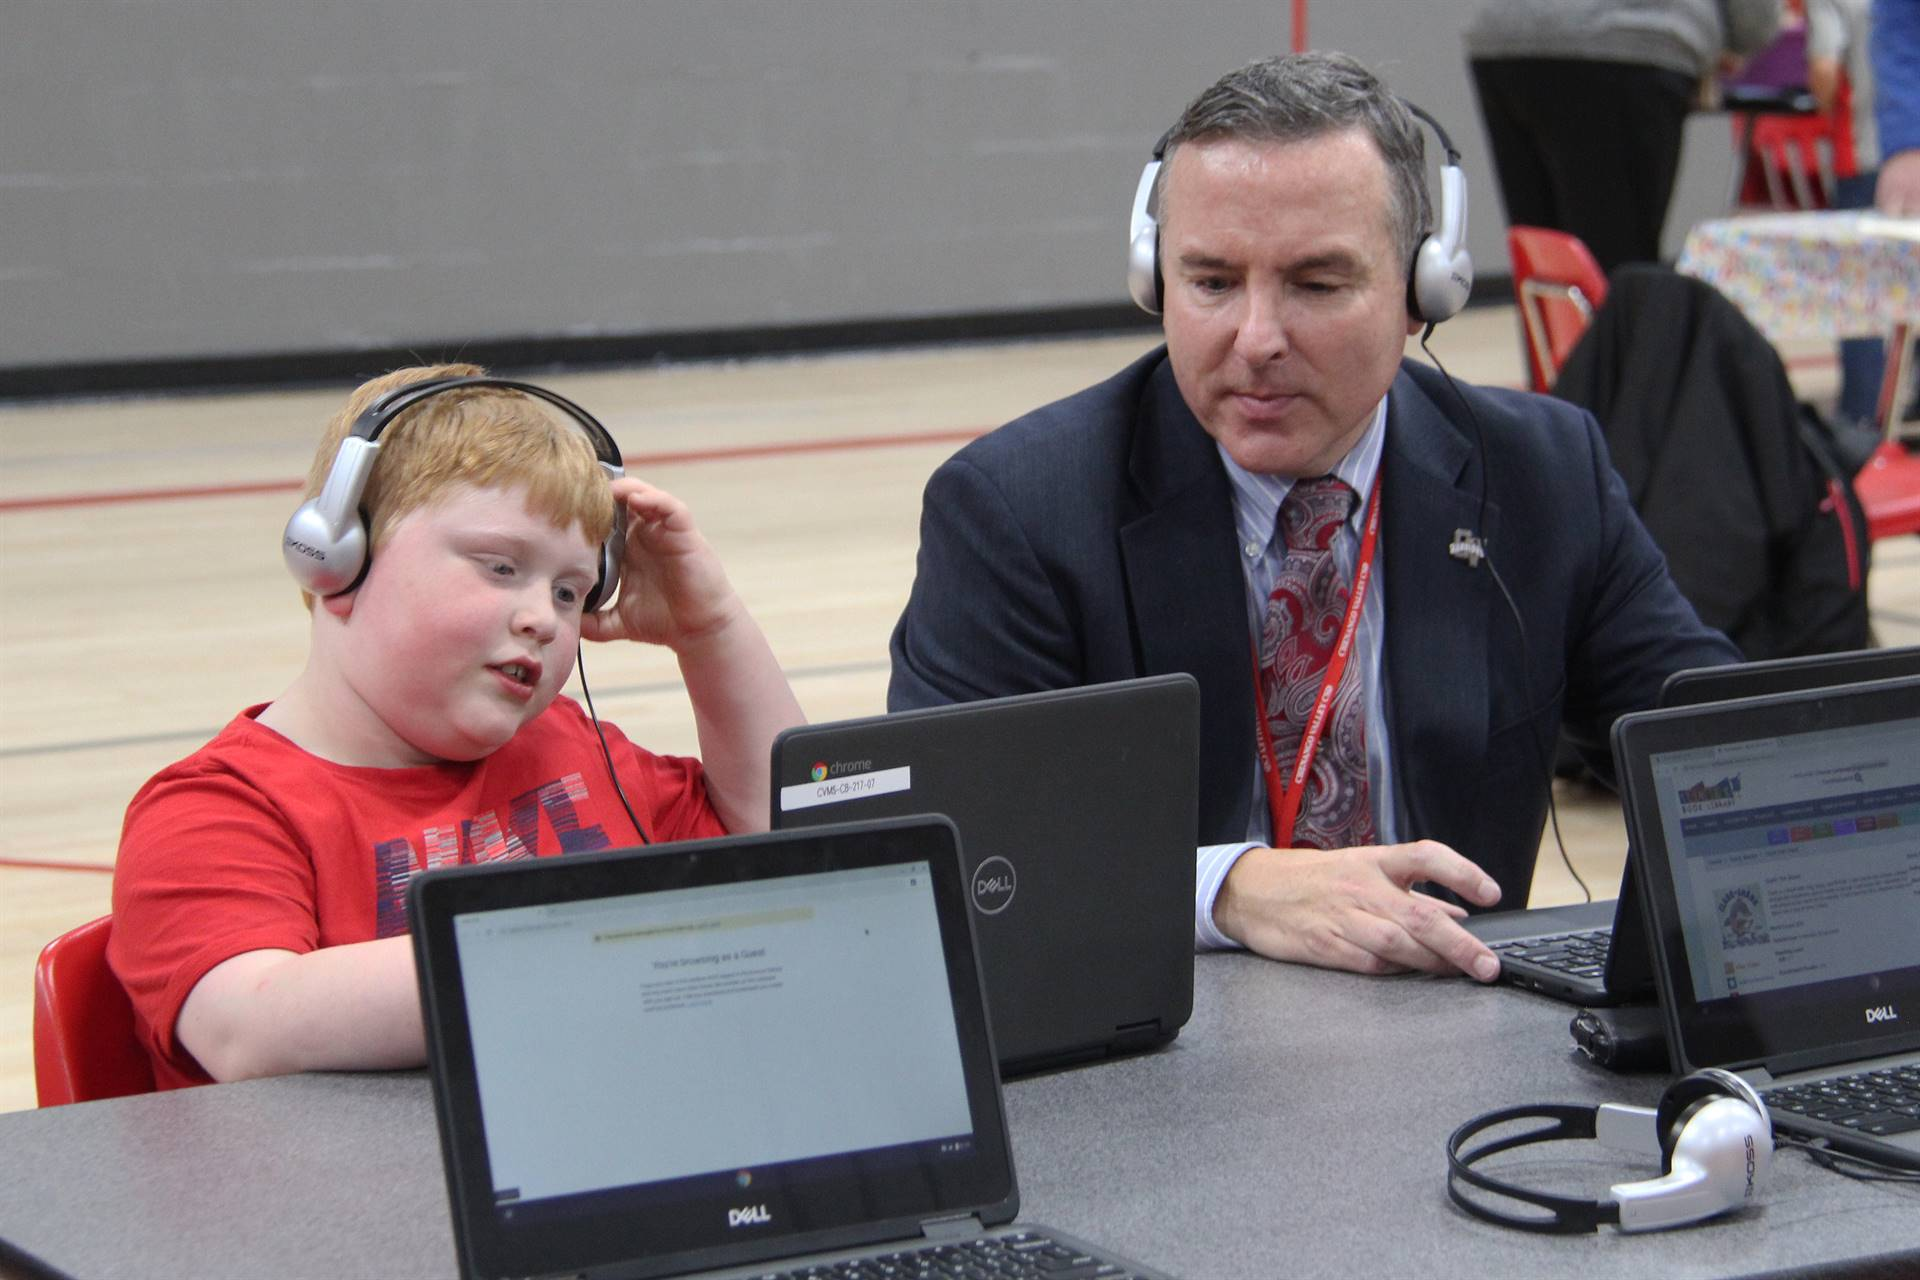 superintendent and student working on lap top computers